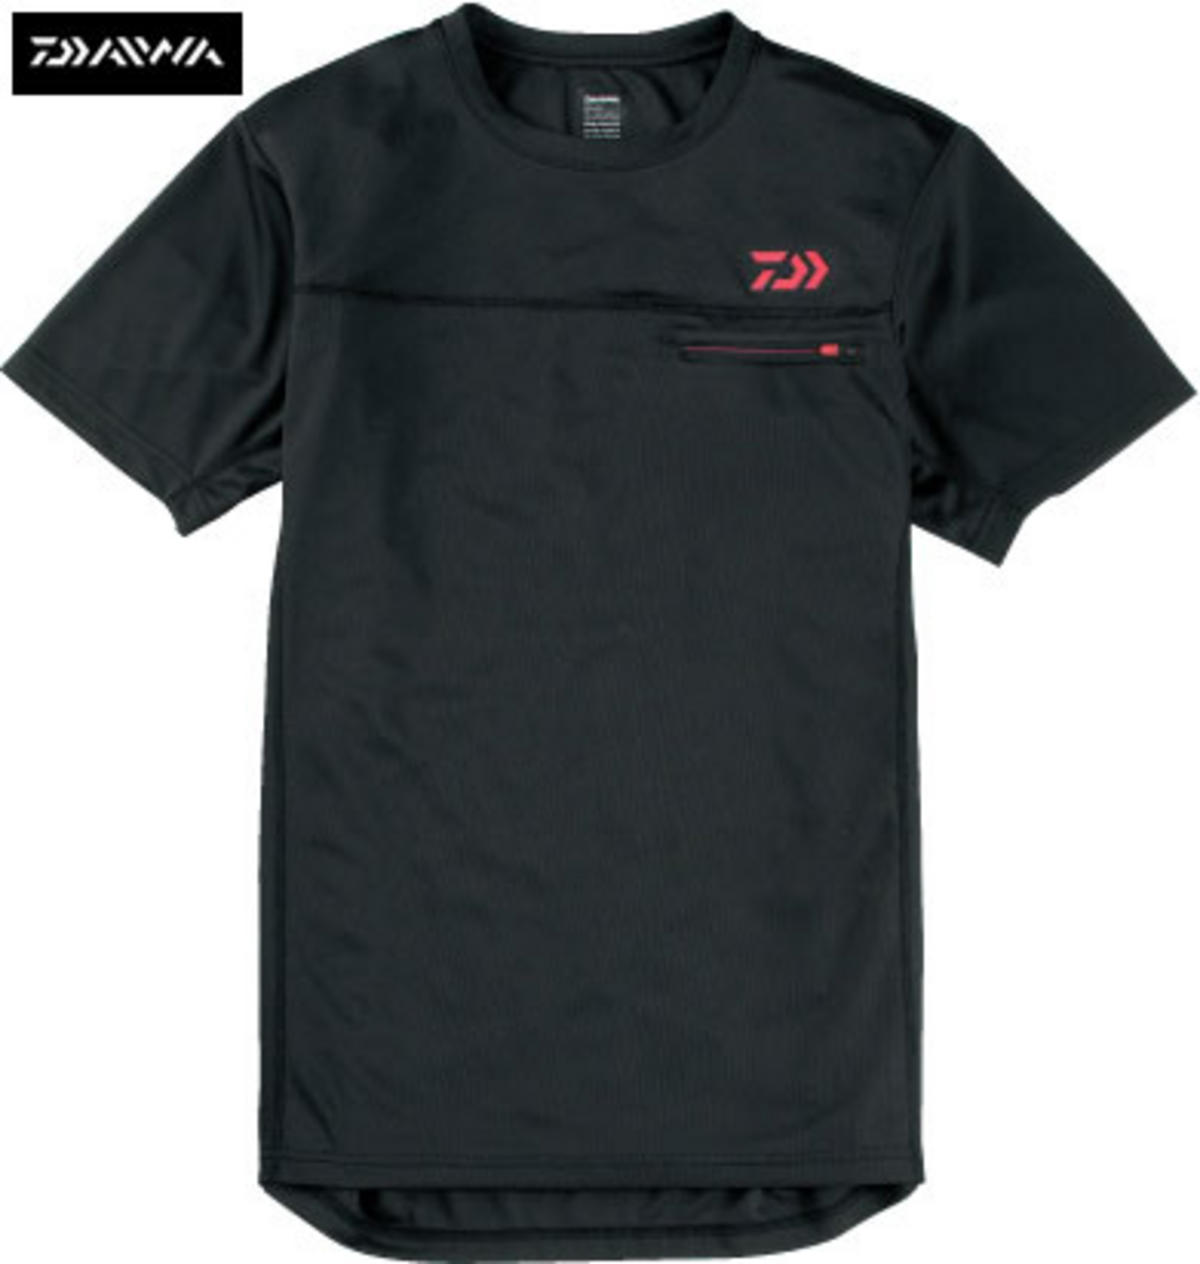 NEW DAIWA JAPAN SHORT SLEEVE BASE LAYER T-SHIRT BLACK SIZES MED - XXL